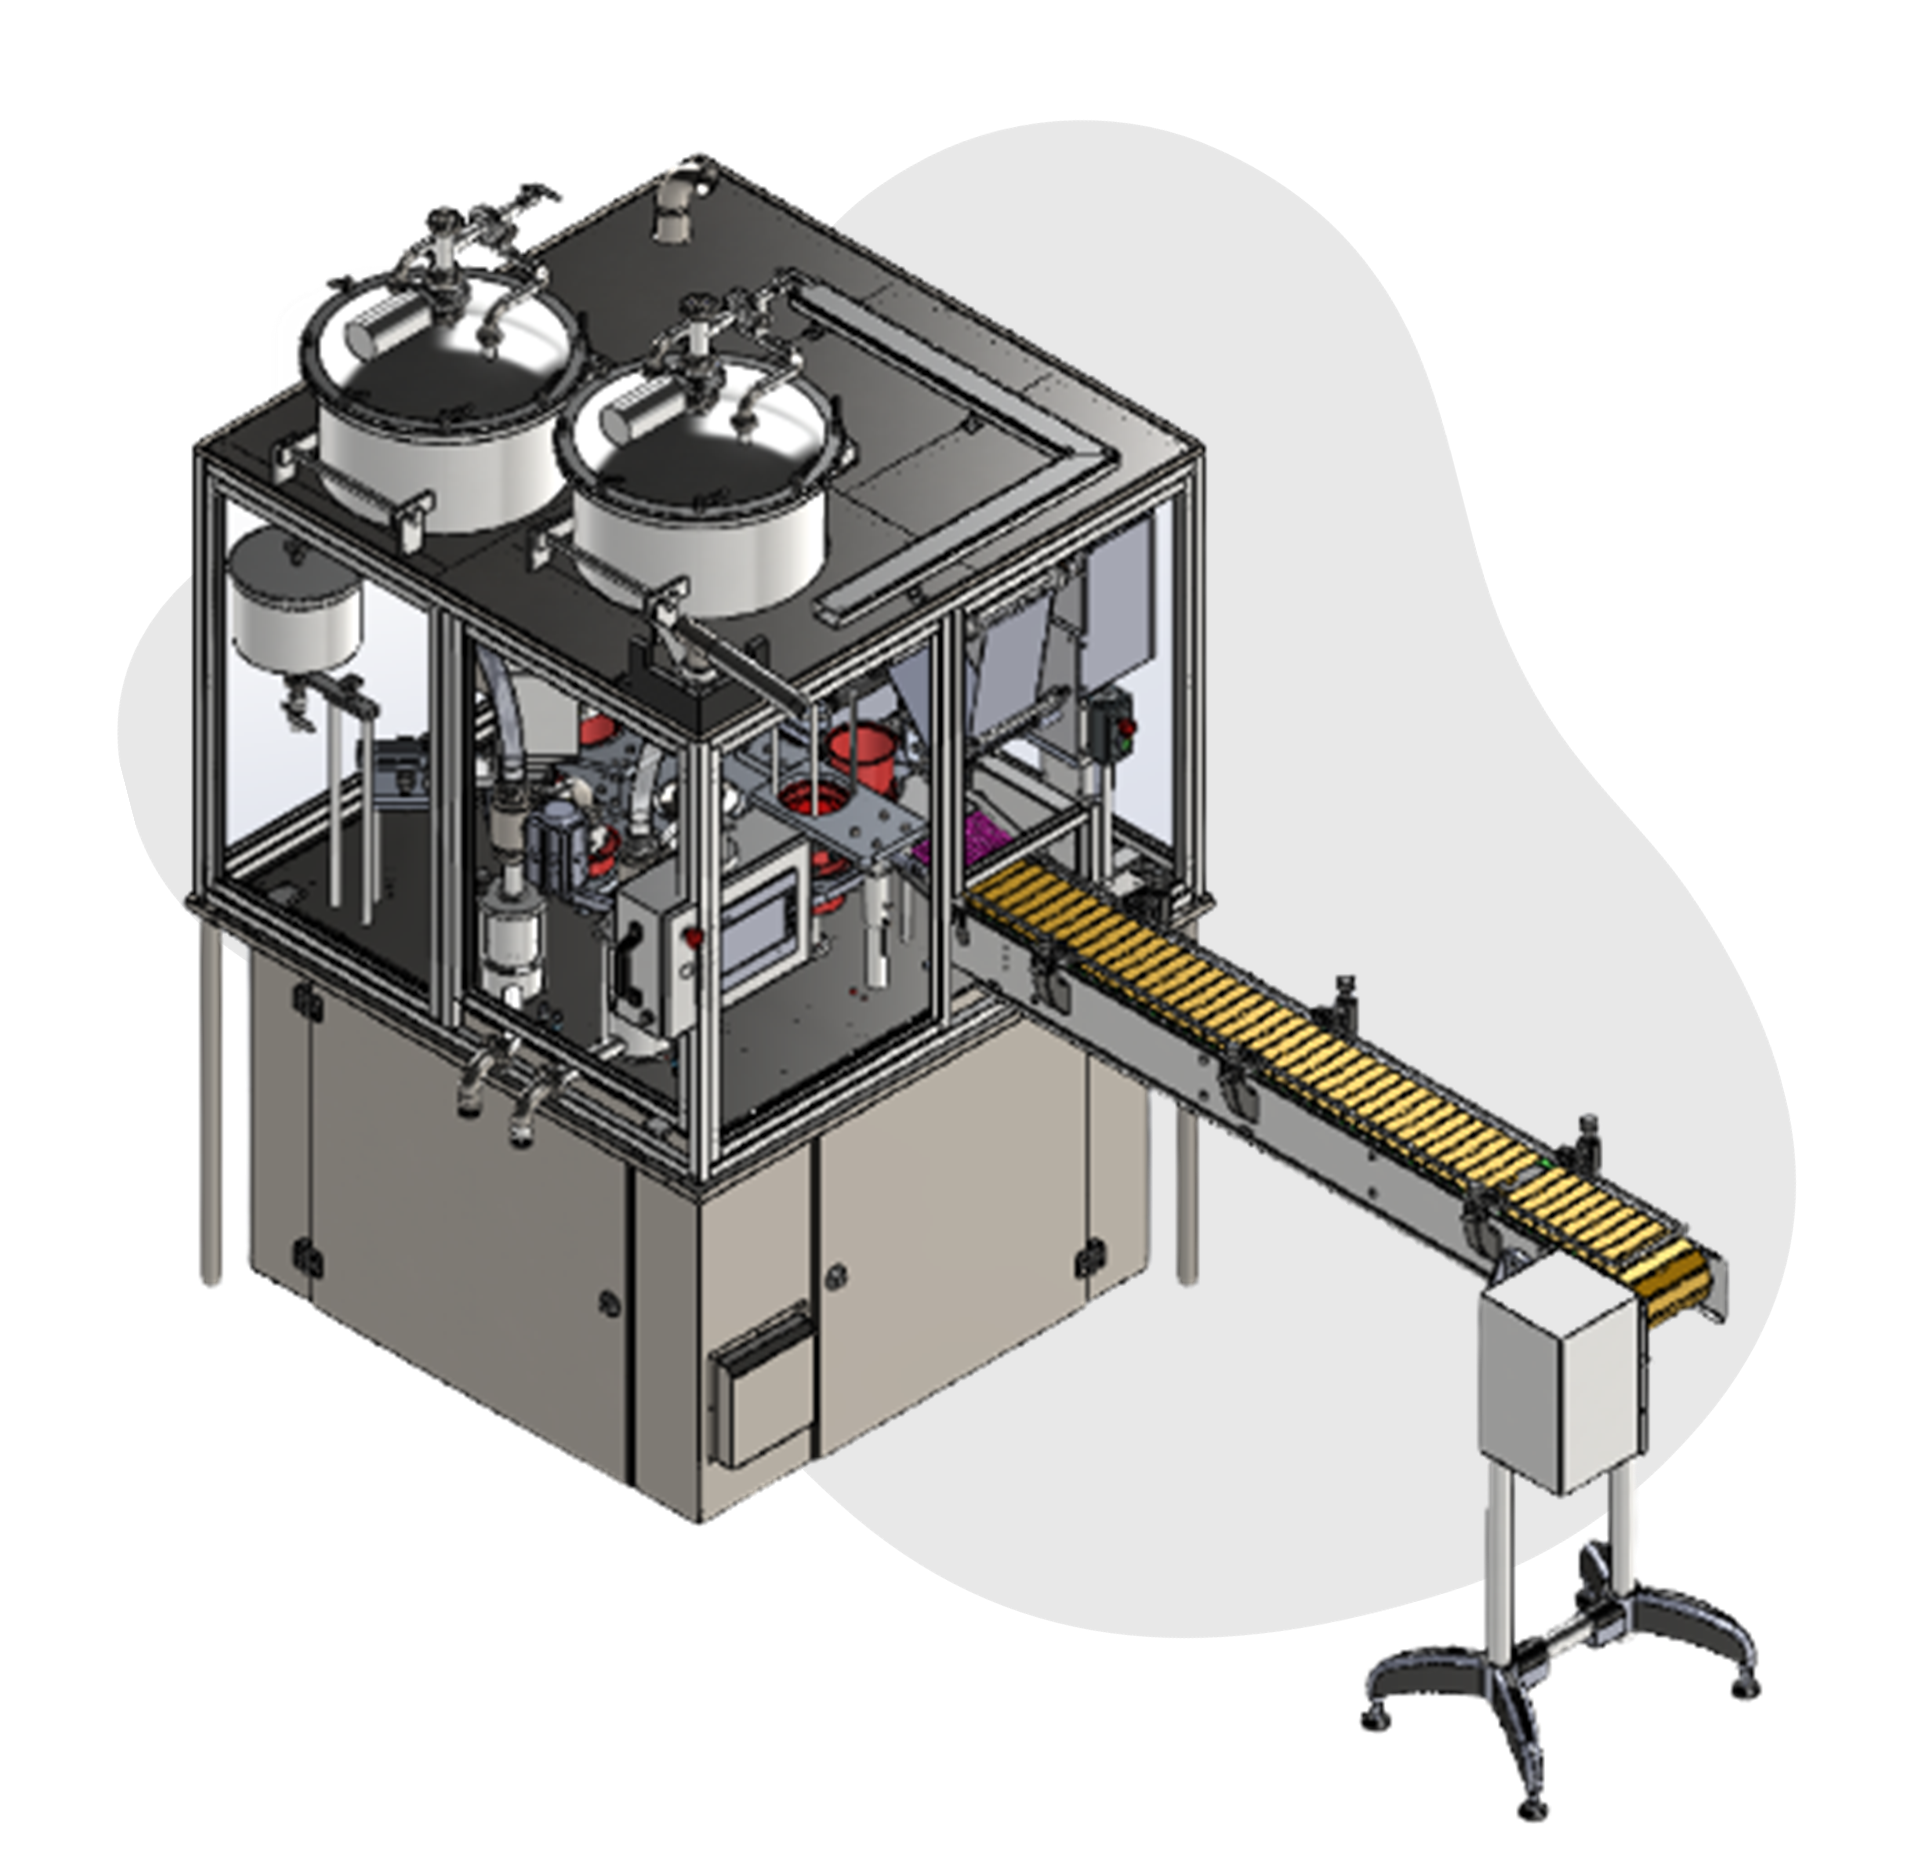 ROTARY-FULLY-AUTOMATIC-Filling-Machine-Challenger-Product.